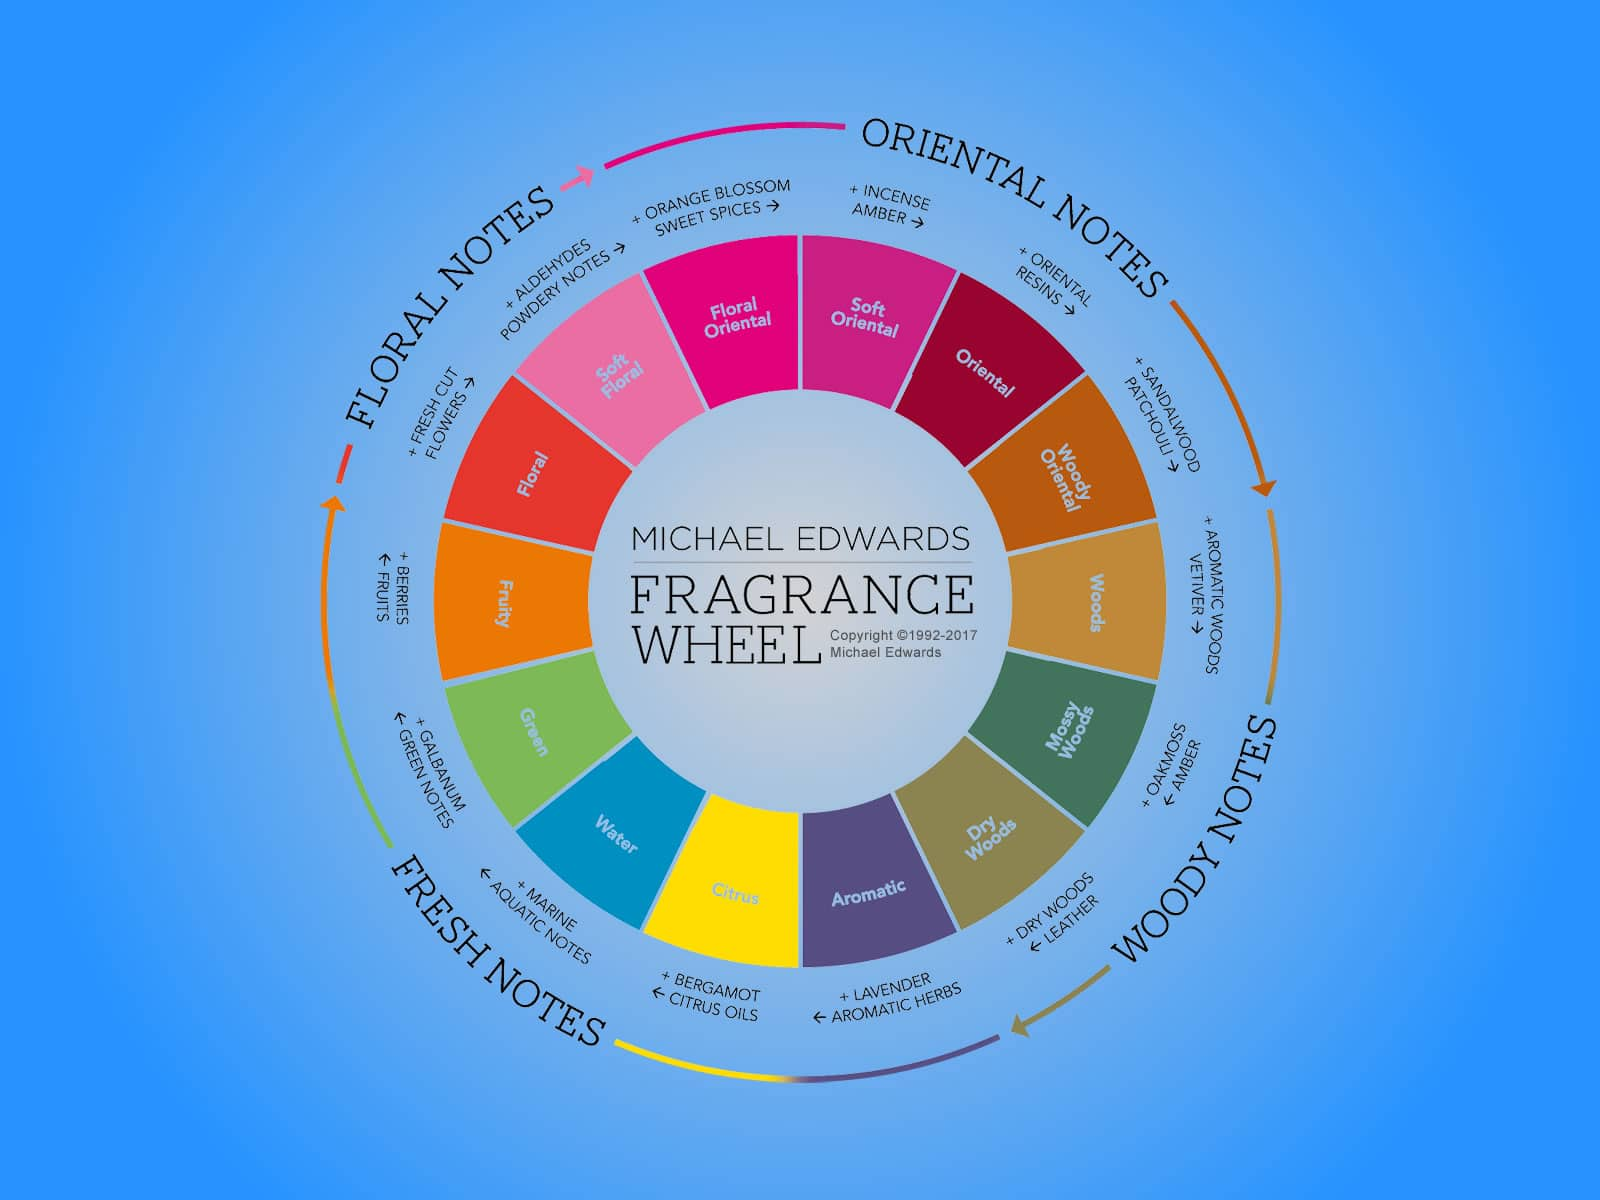 right fragrance